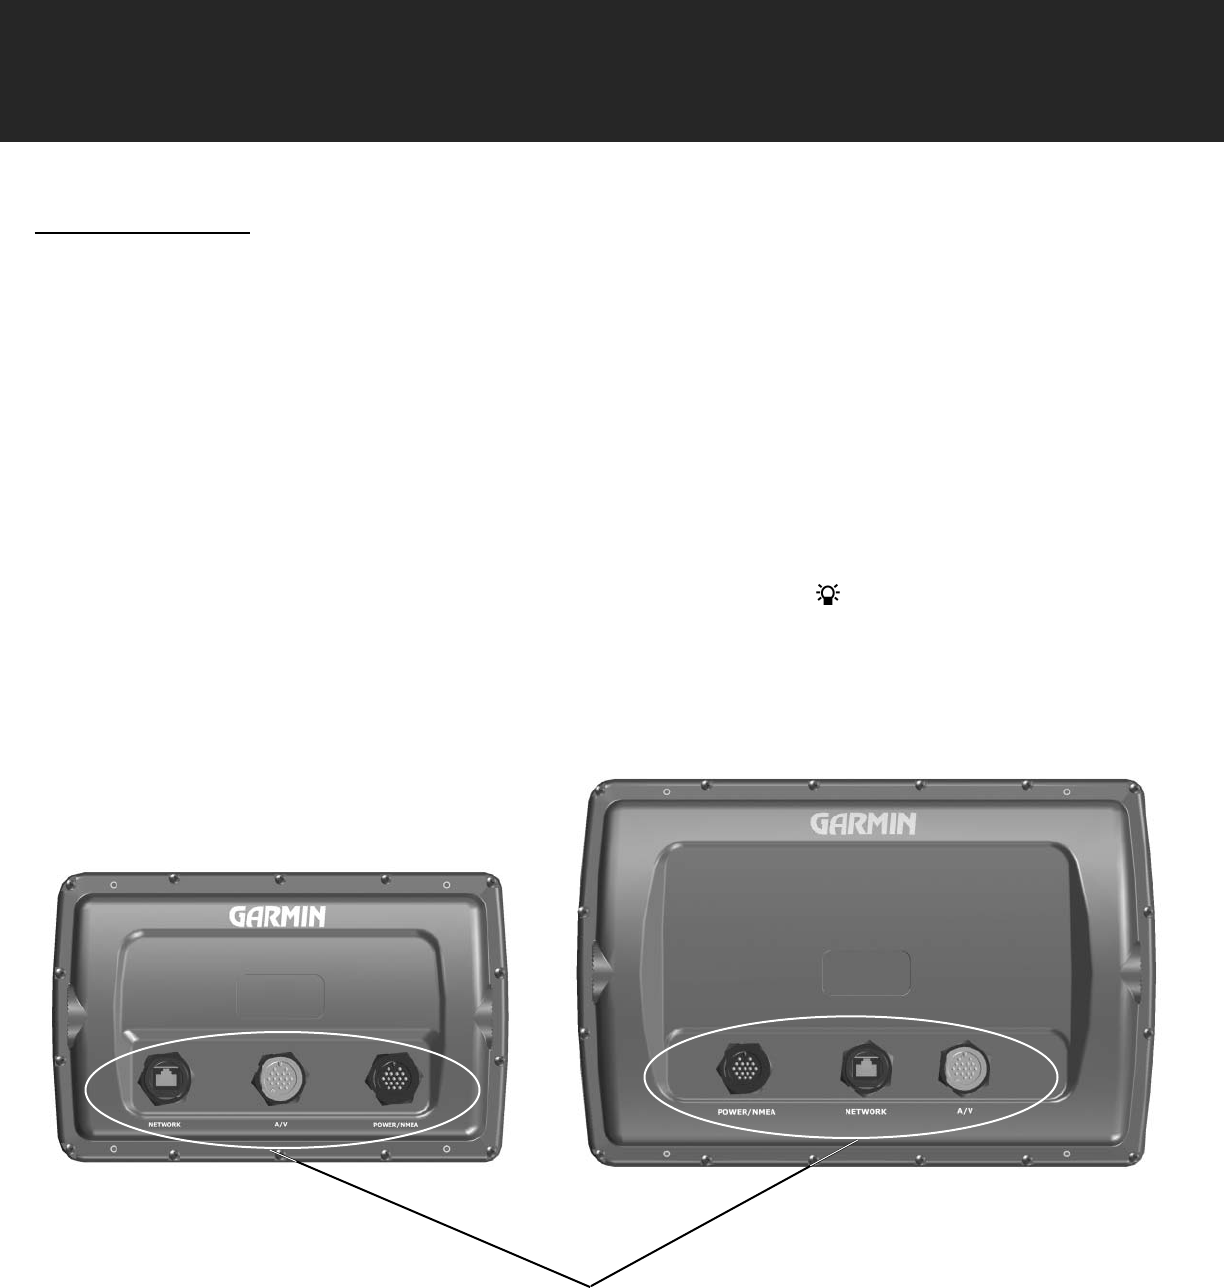 hight resolution of final wiring connection